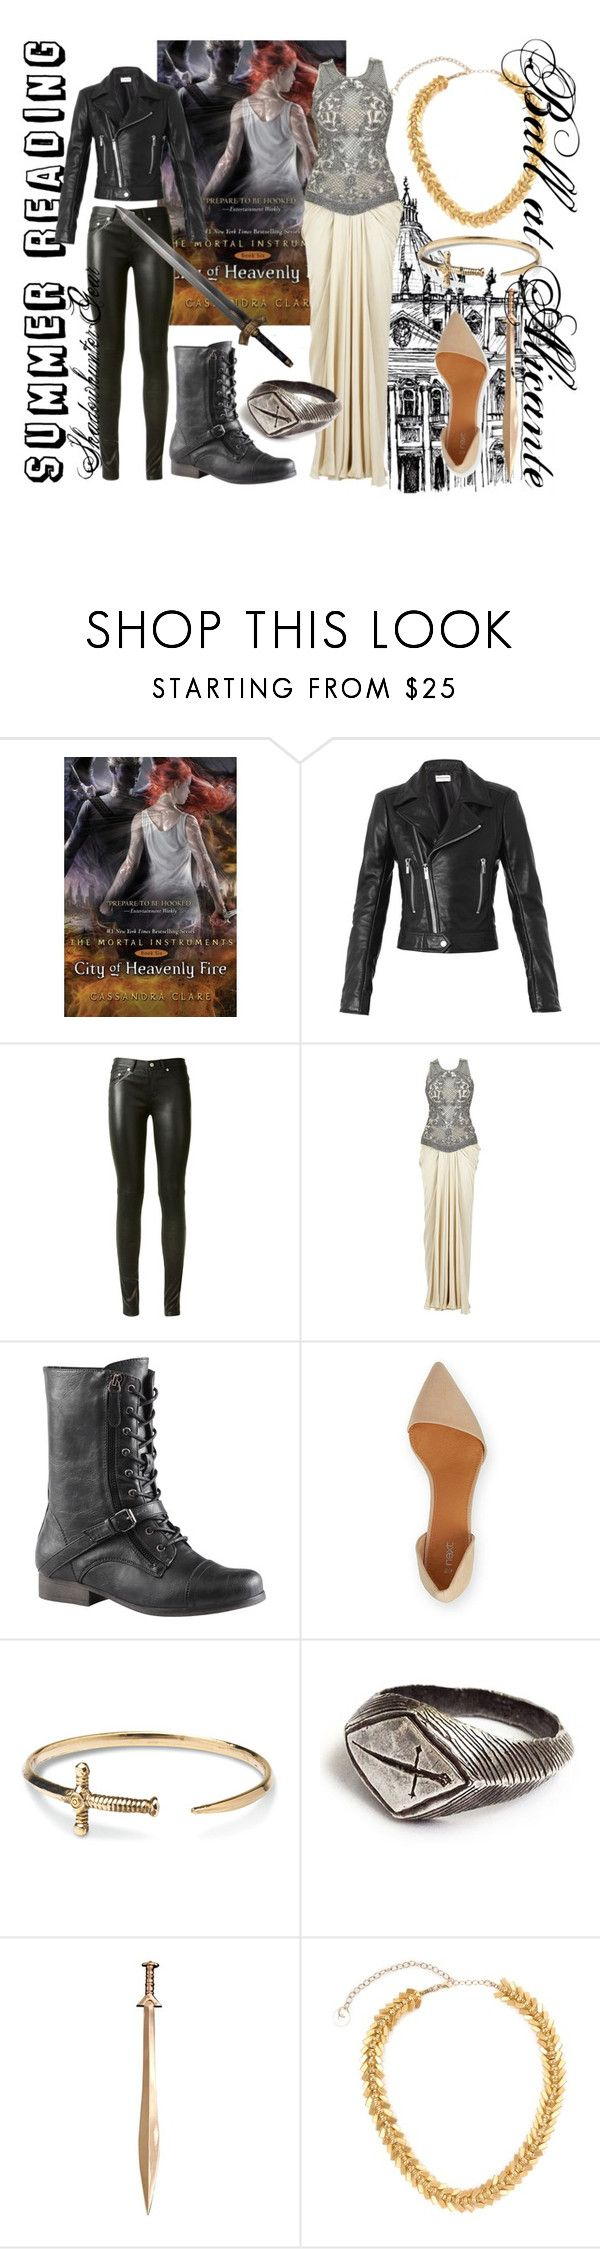 """Bookish Fashion: City of Heavenly Fire"" by readingupwiththejoneses ❤ liked on Polyvore featuring Balenciaga, Yves Saint Laurent, TOMS, Alice Menter, wings, summerreading, sword and cohf"